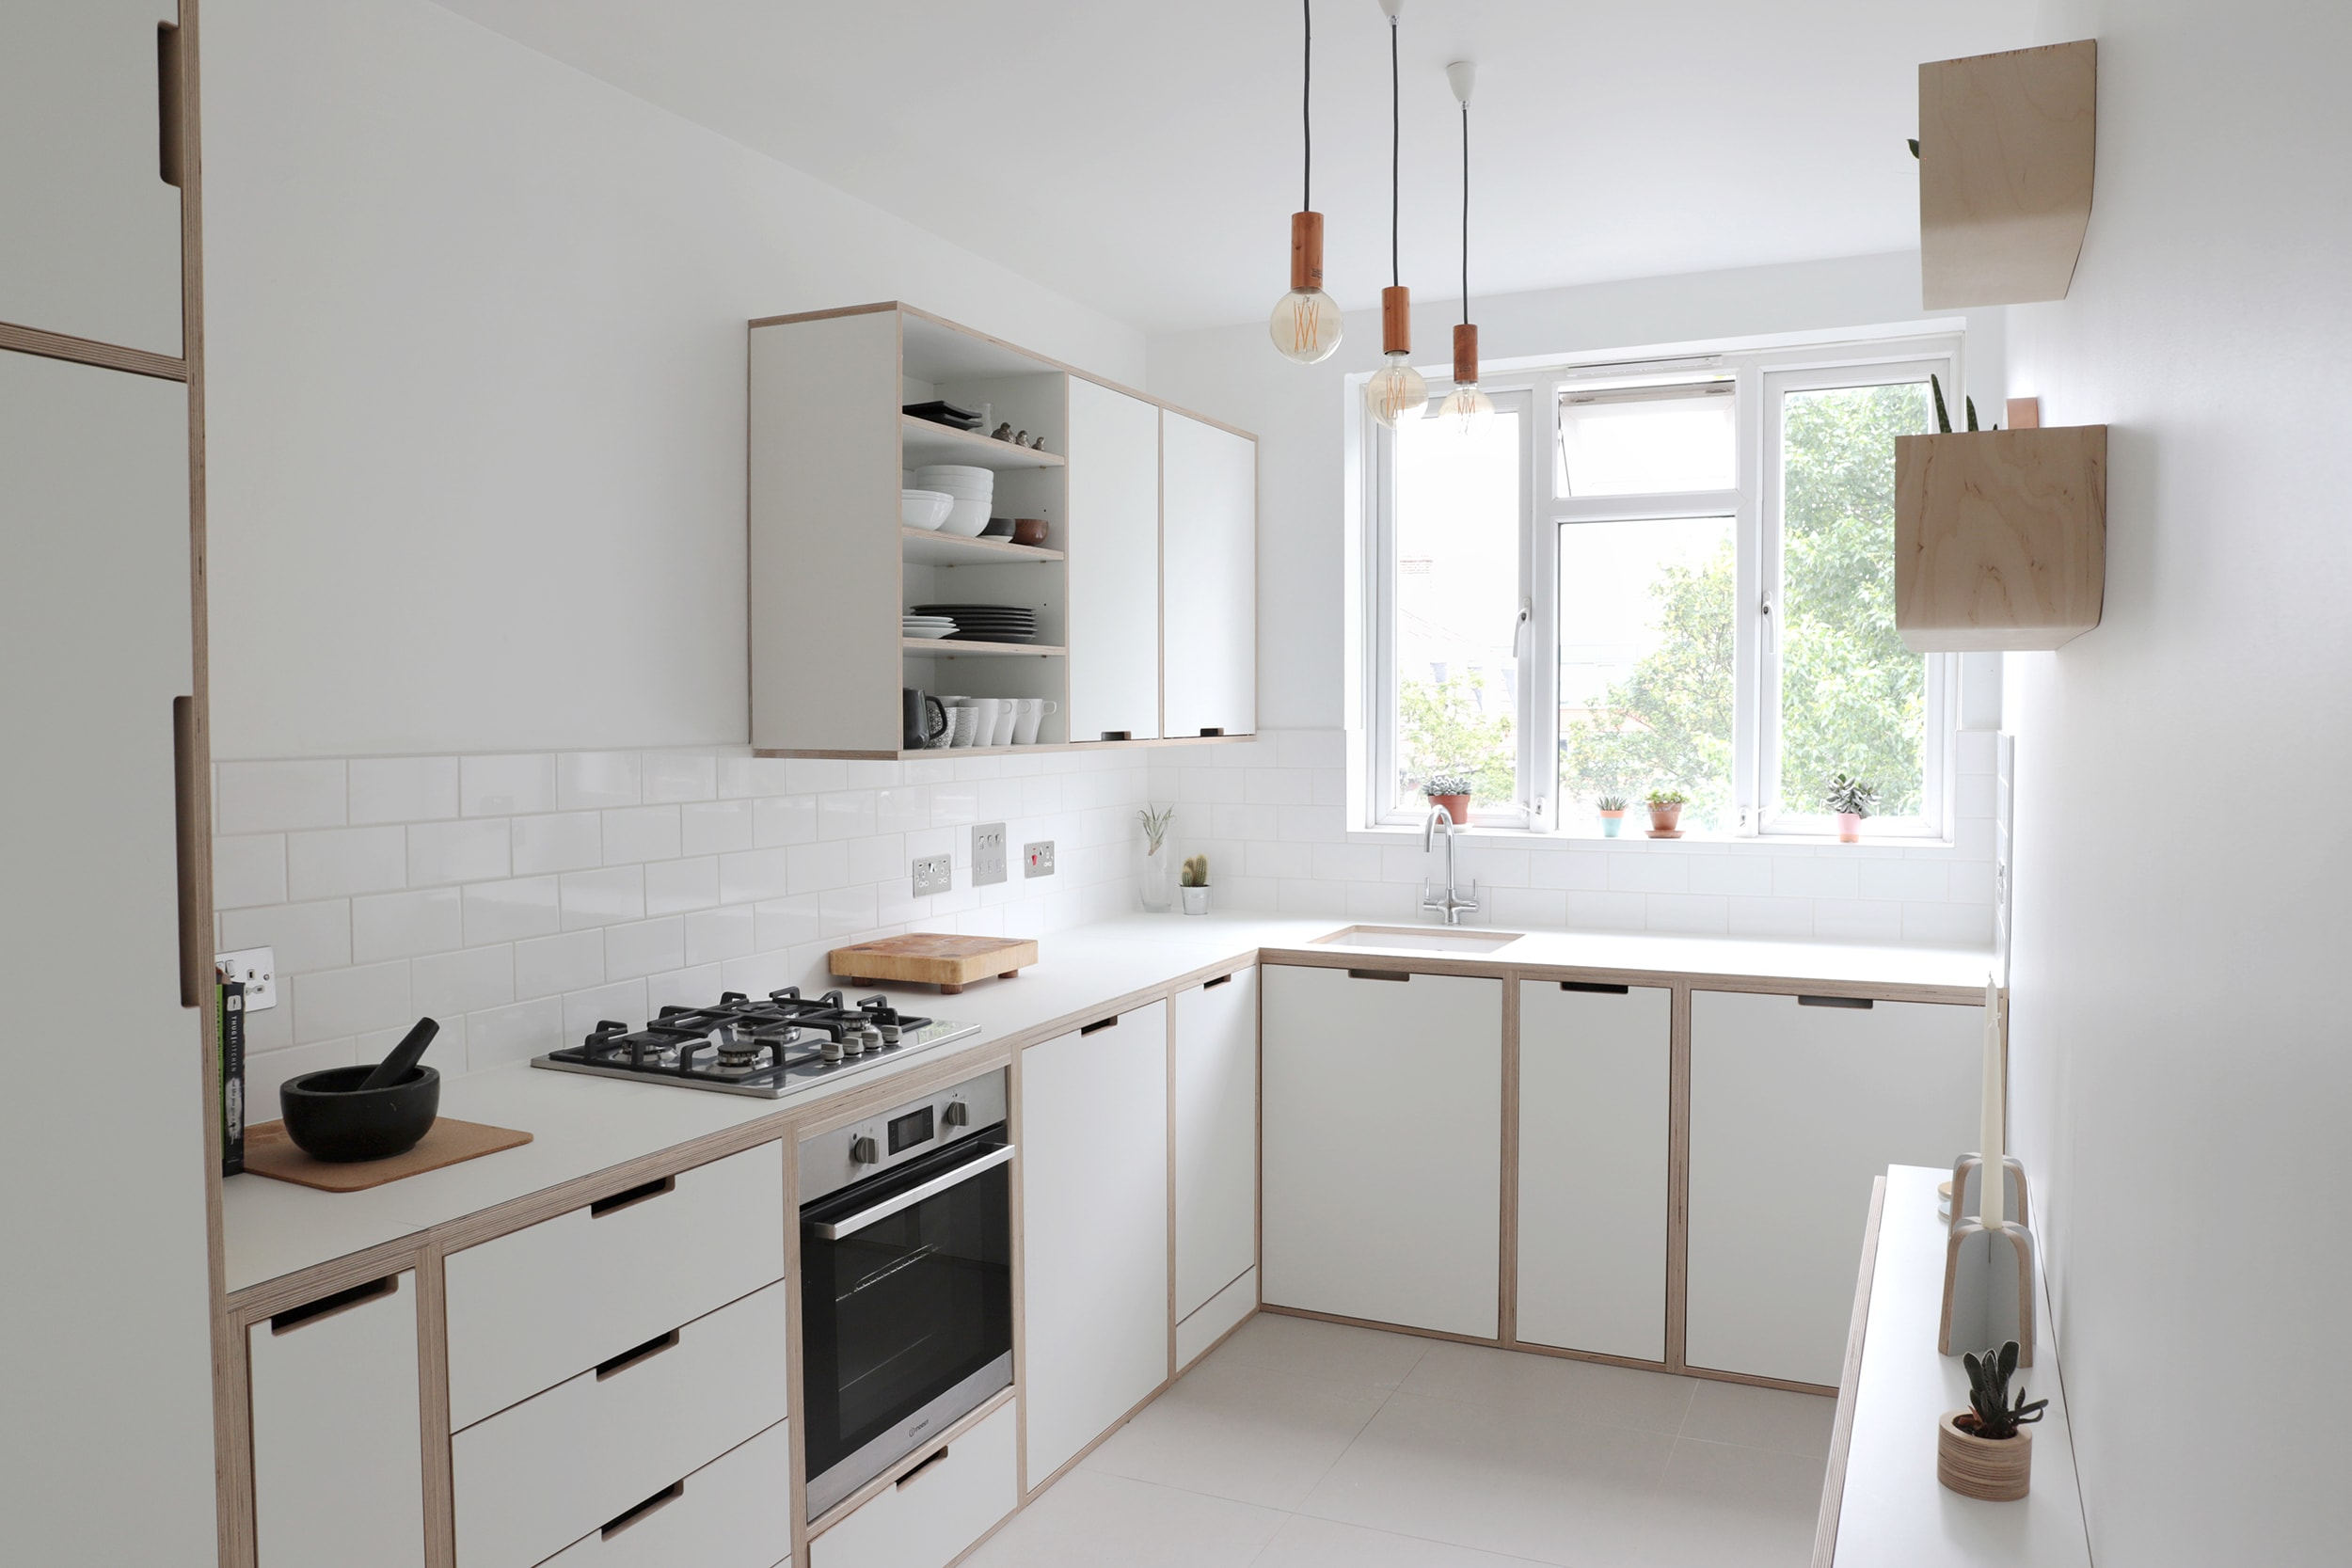 Sarah and Peter's minimal plywood kitchen in Clapton kitchen by Lozi